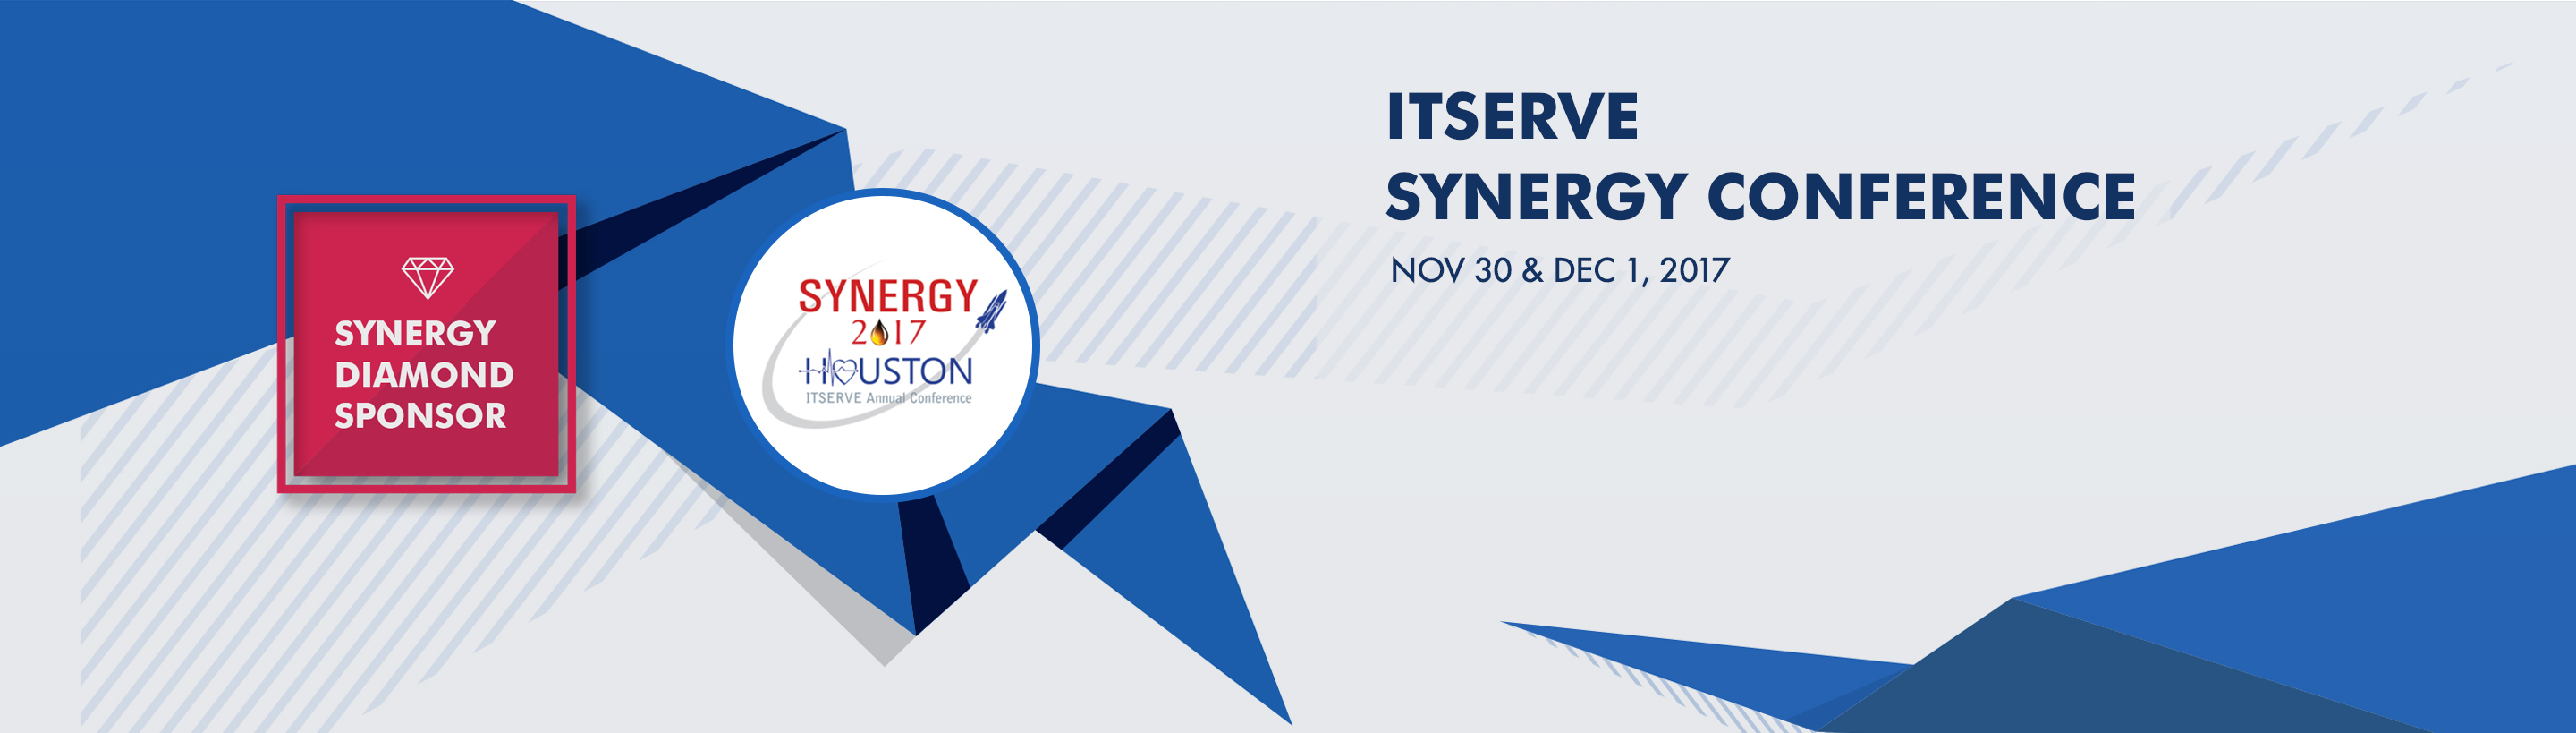 lucas-itserve-synergy-conference